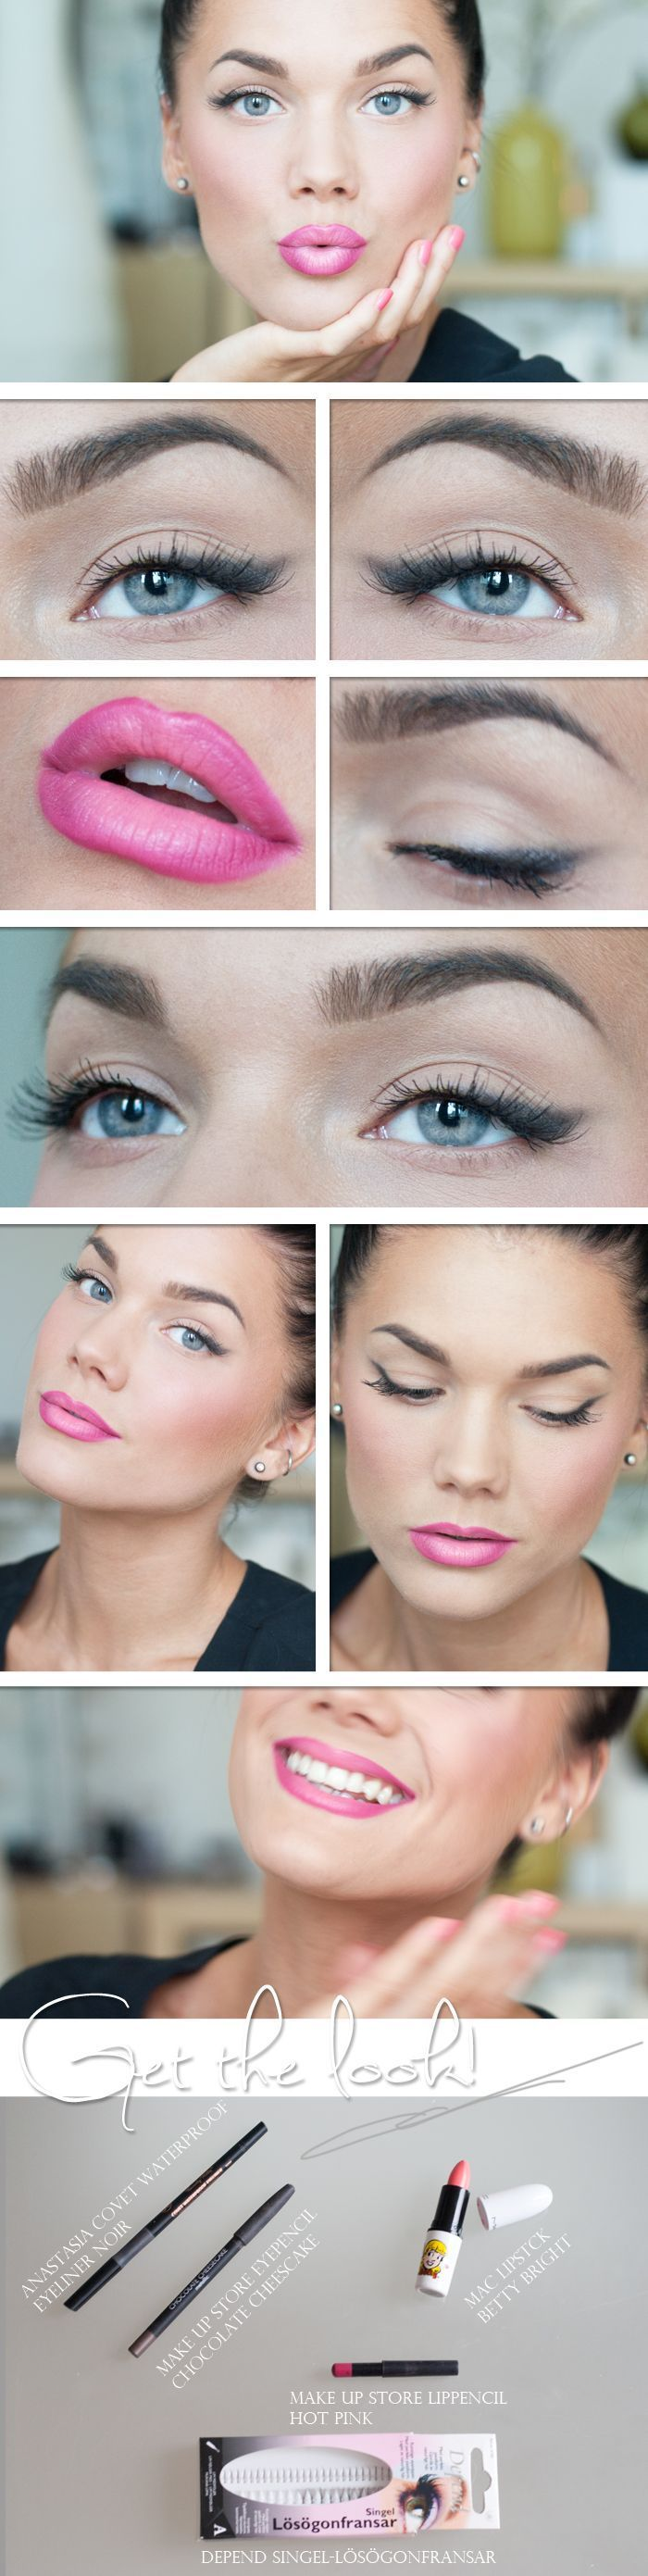 How to even out your eyelids without surgery youtube - 50 Best Easy Cat Eyes